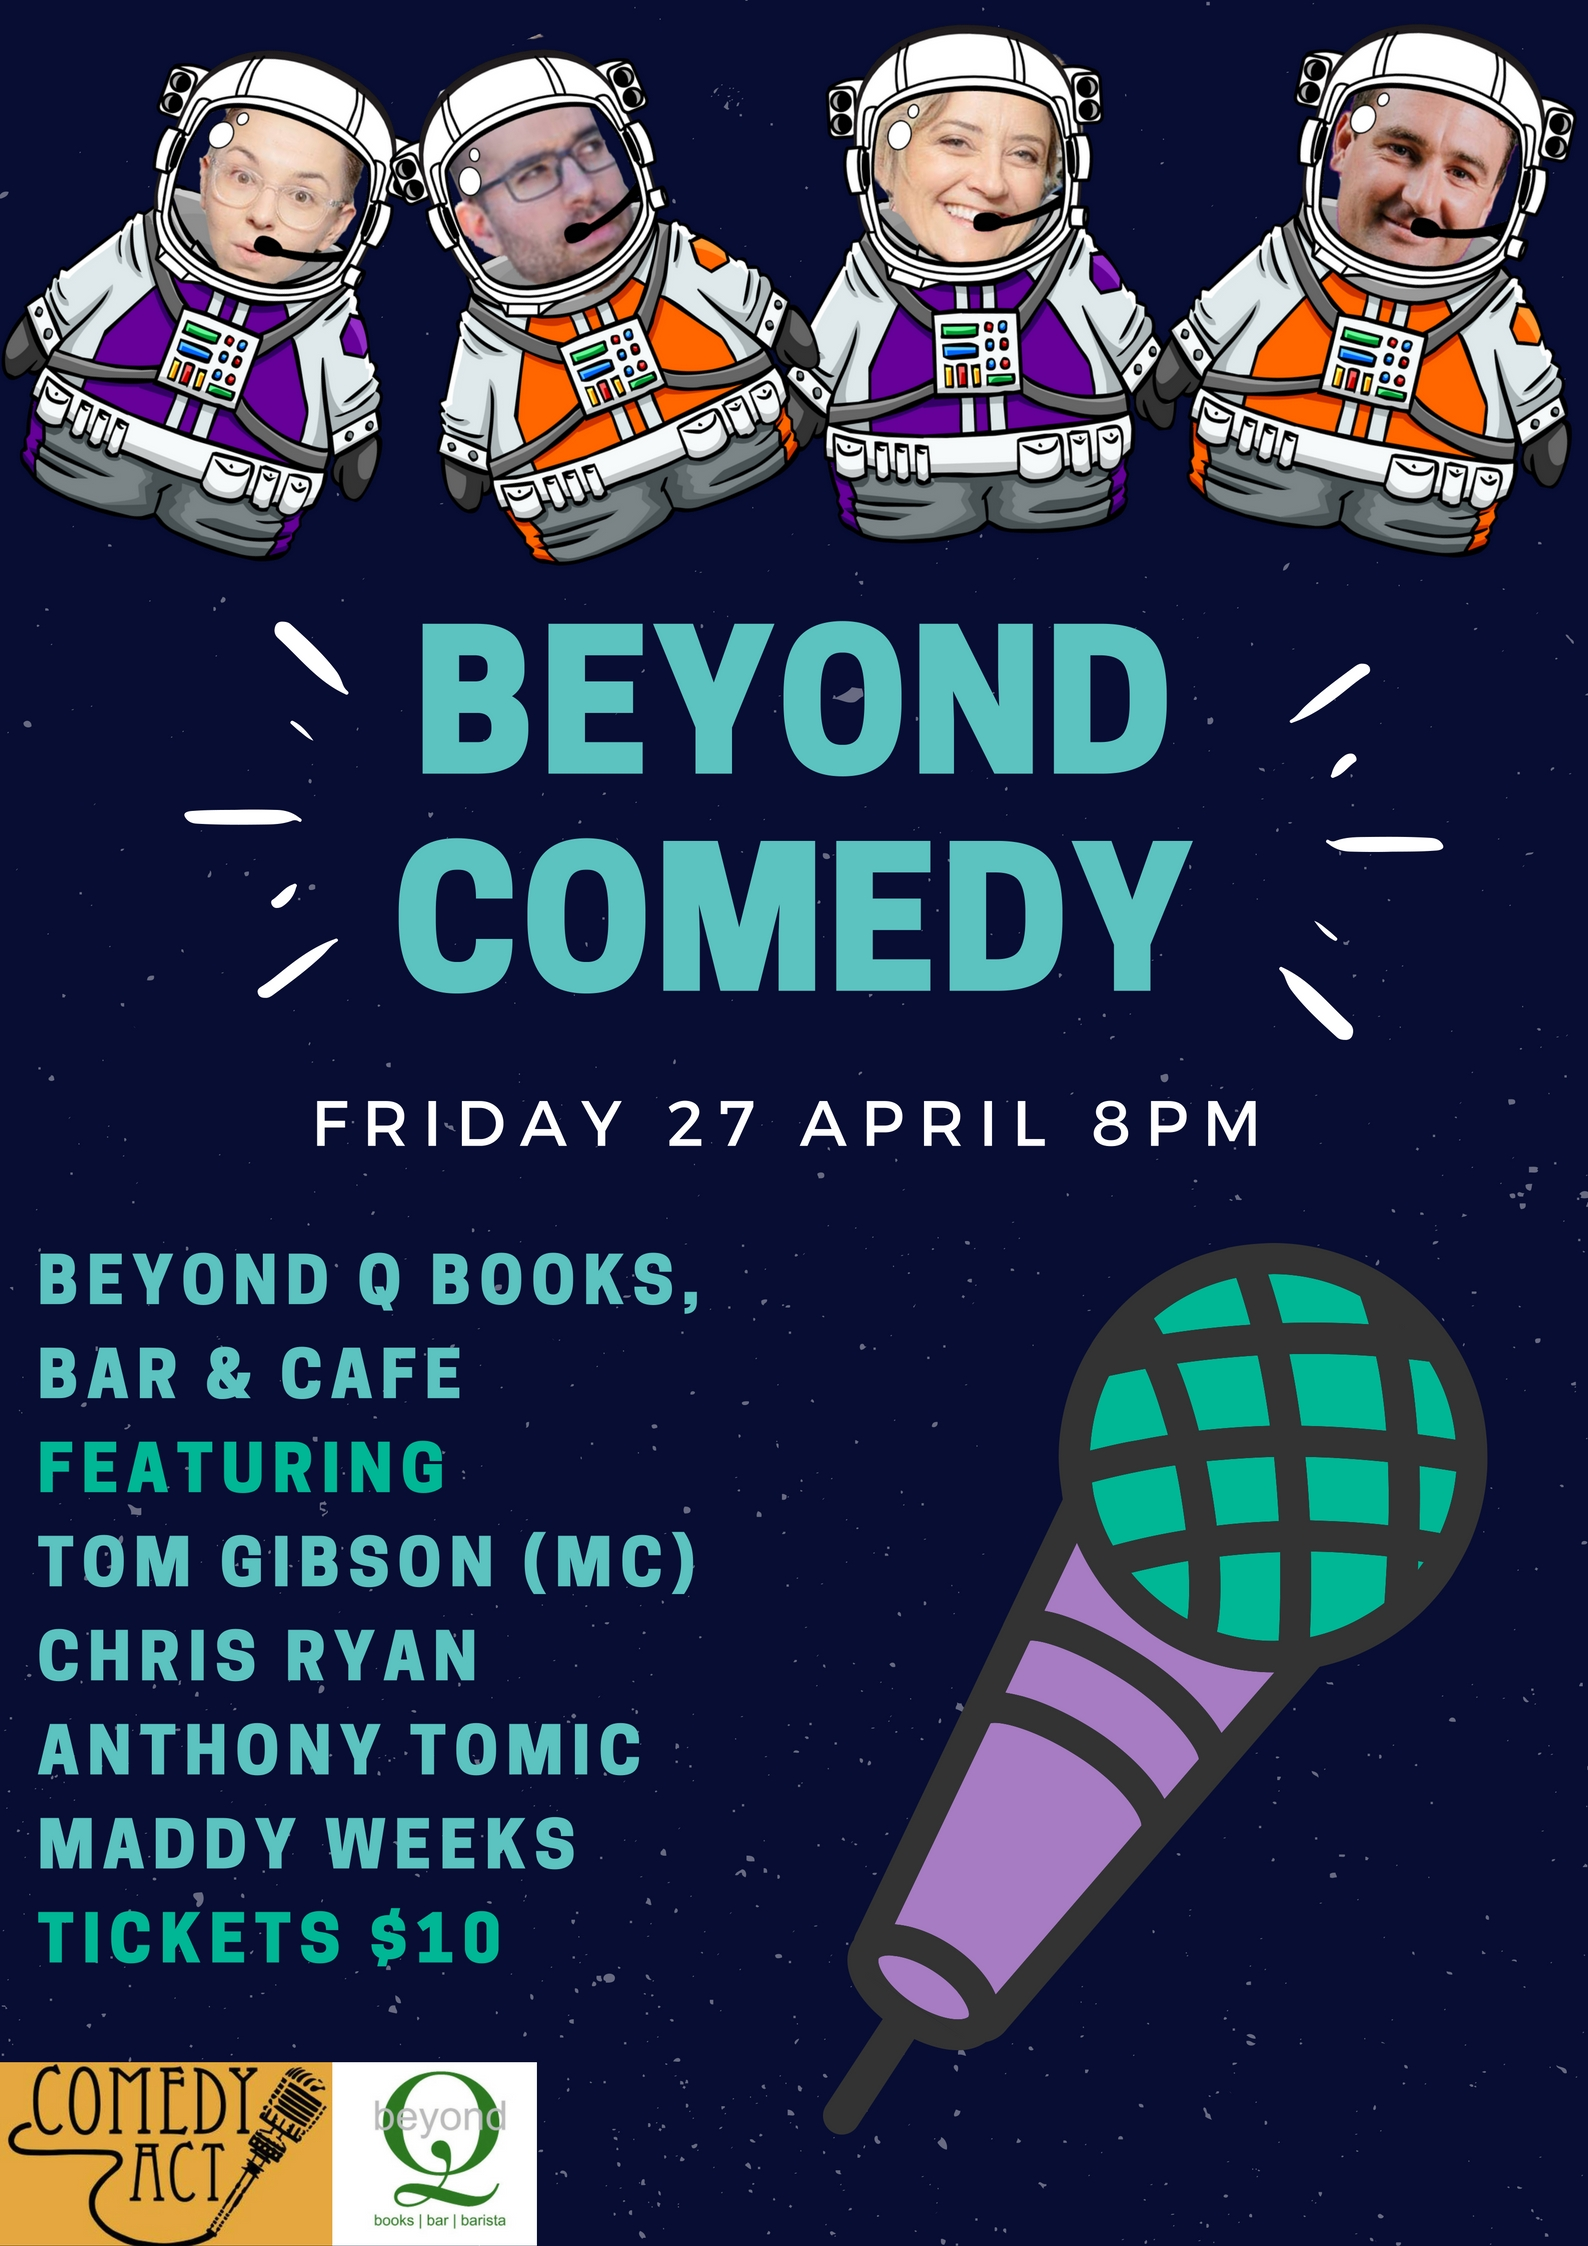 BEYOND COMEDY Poster